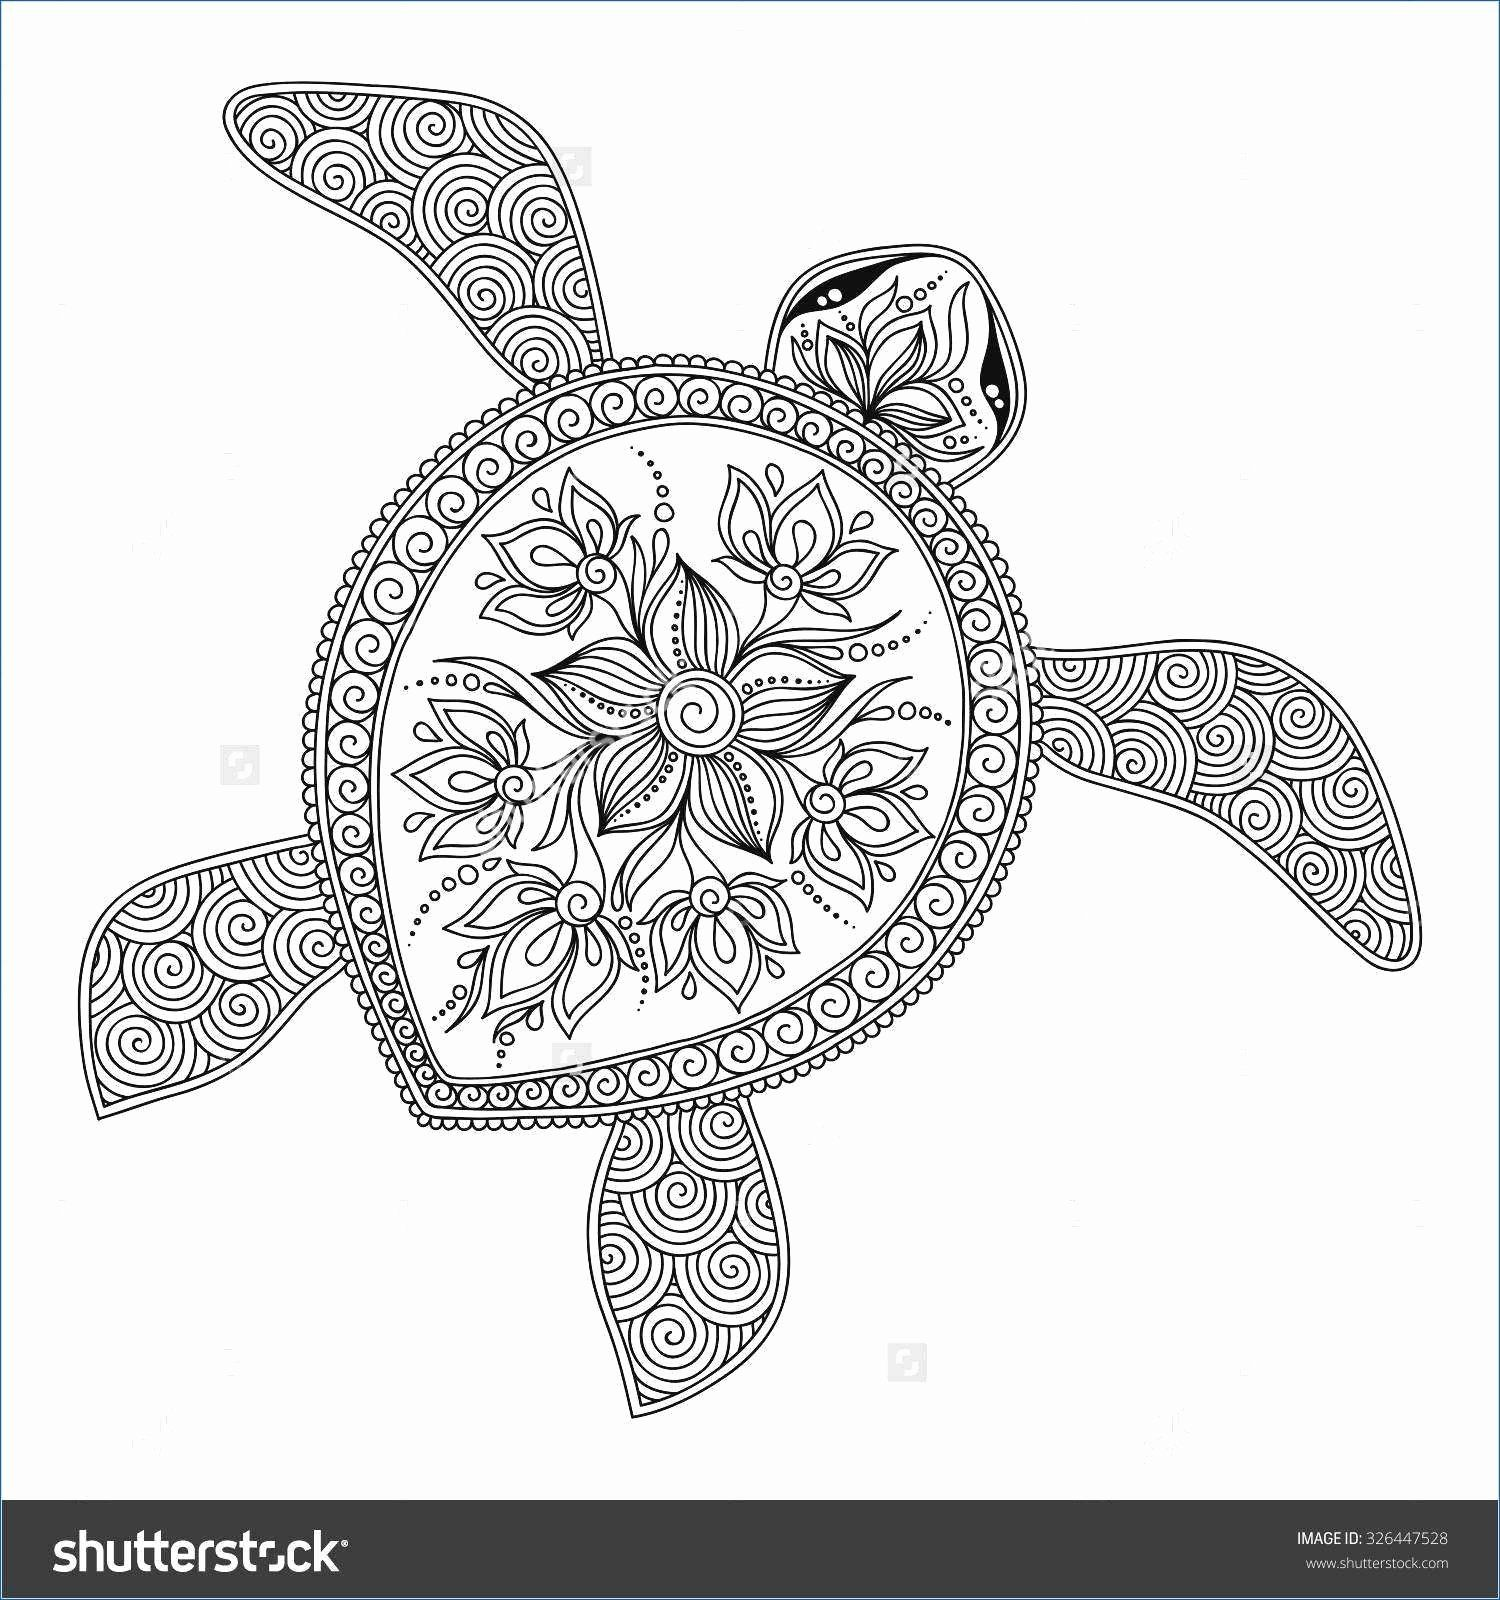 Free Finding Dory Coloring Pages In 2020 Turtle Coloring Pages Animal Coloring Pages Nemo Coloring Pages